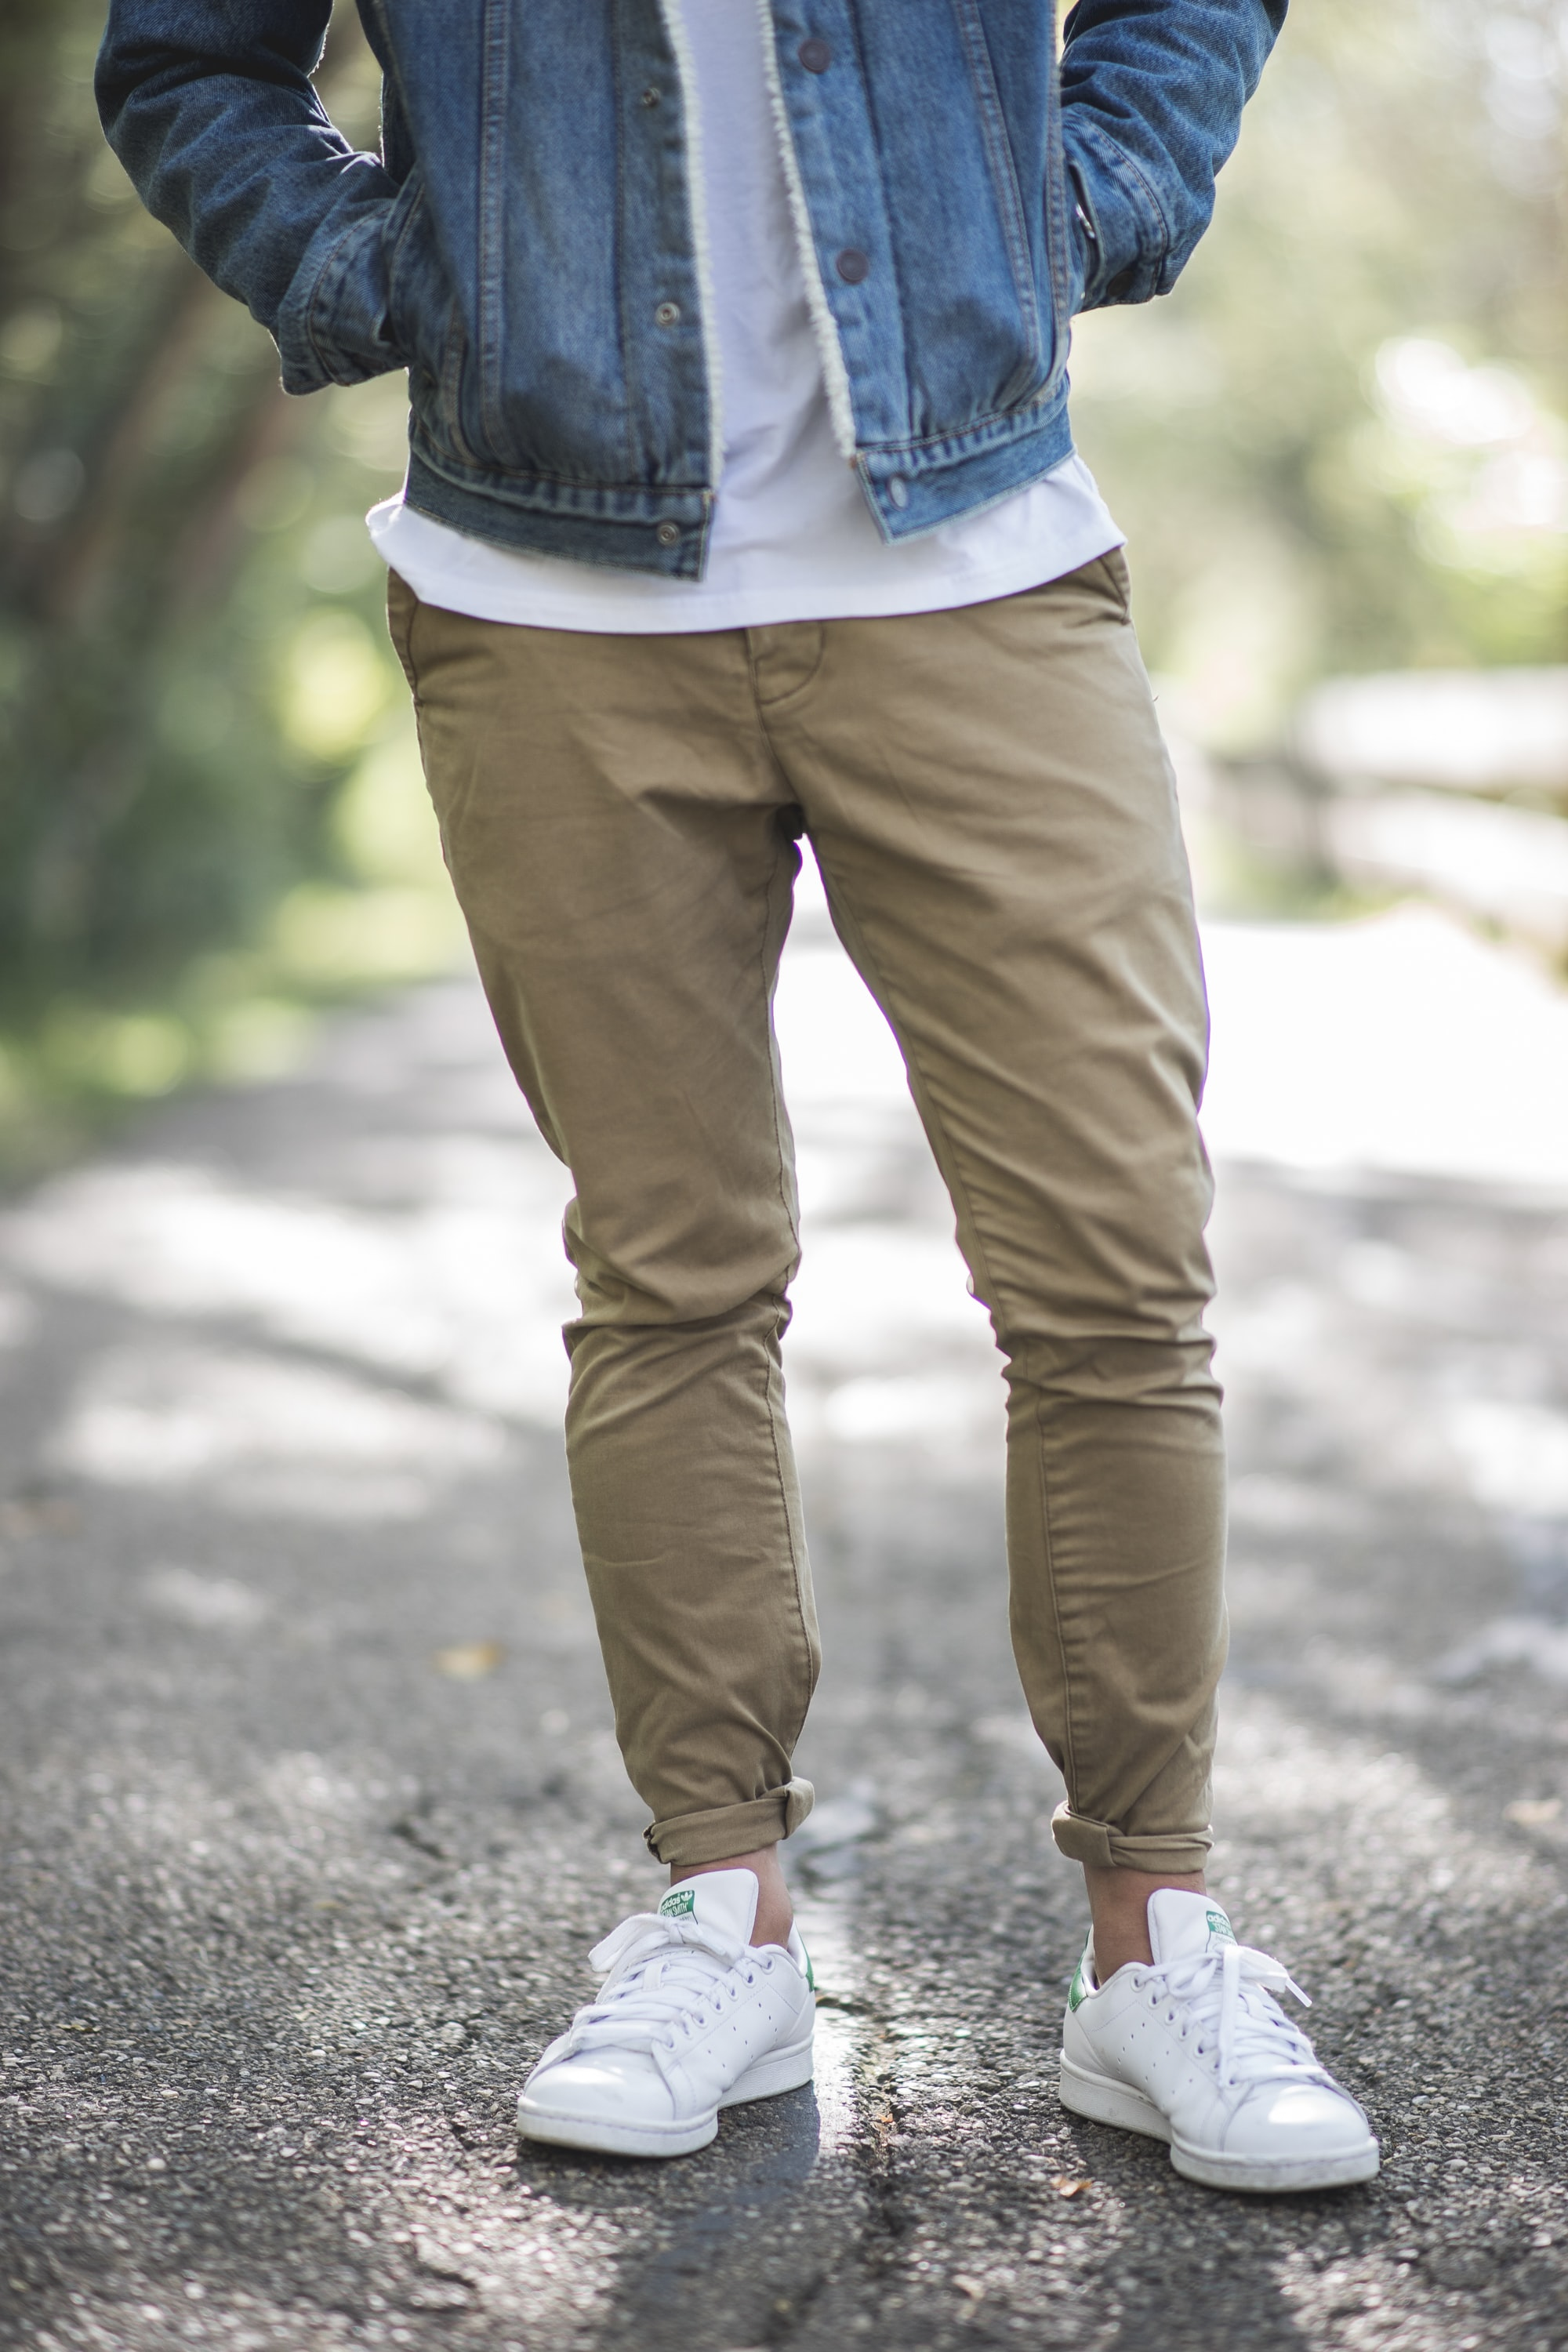 Low shot of a person in white sneakers, khakis, and a denim jacket